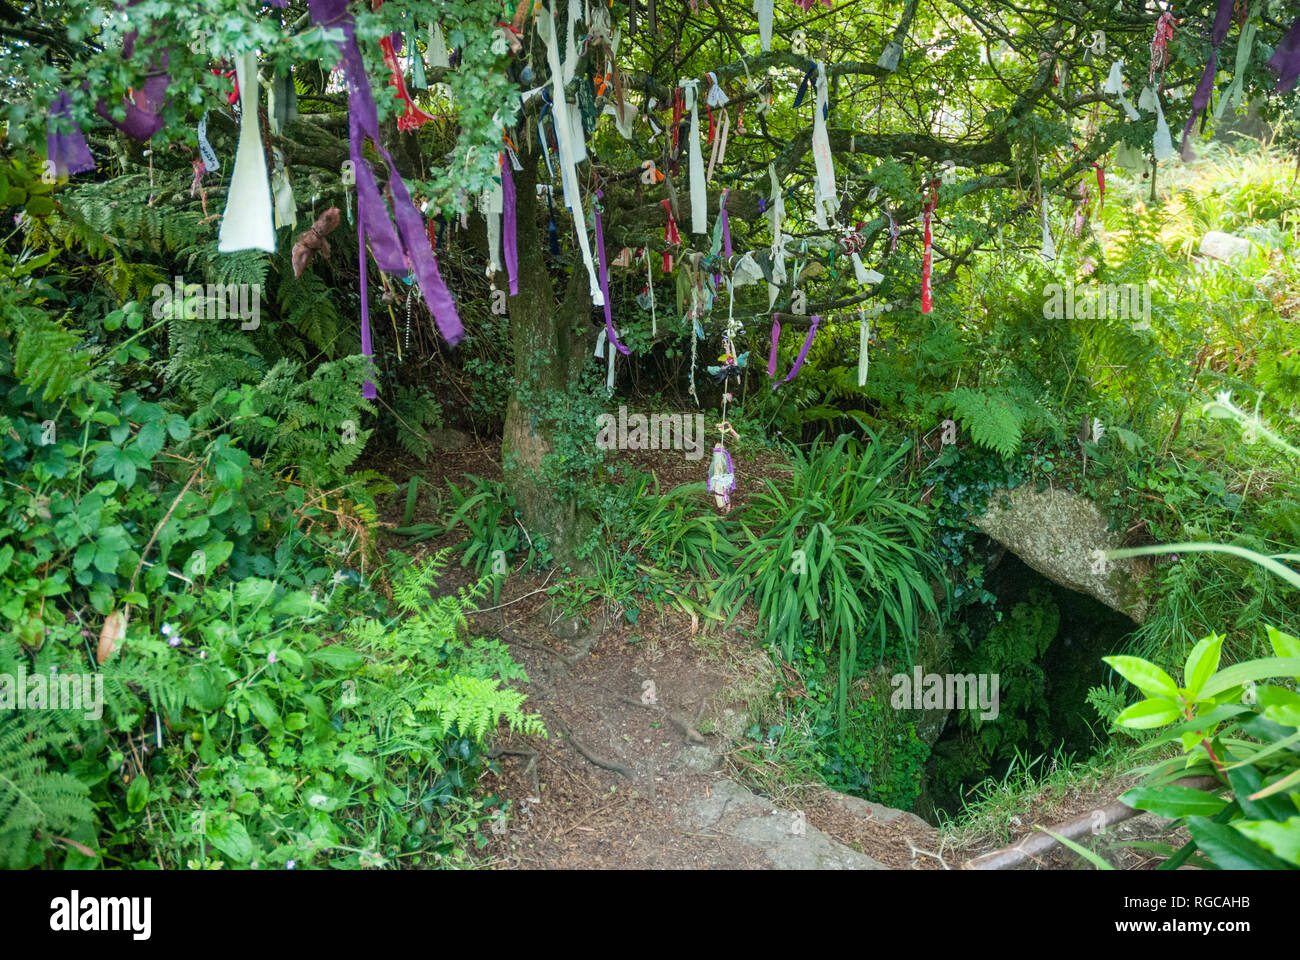 The Sancreed Holy Well in Cornwall beside a 'cloutie tree', bedecked with strips of cloth, as part of a pagan or celtic tradition. - Stock Image